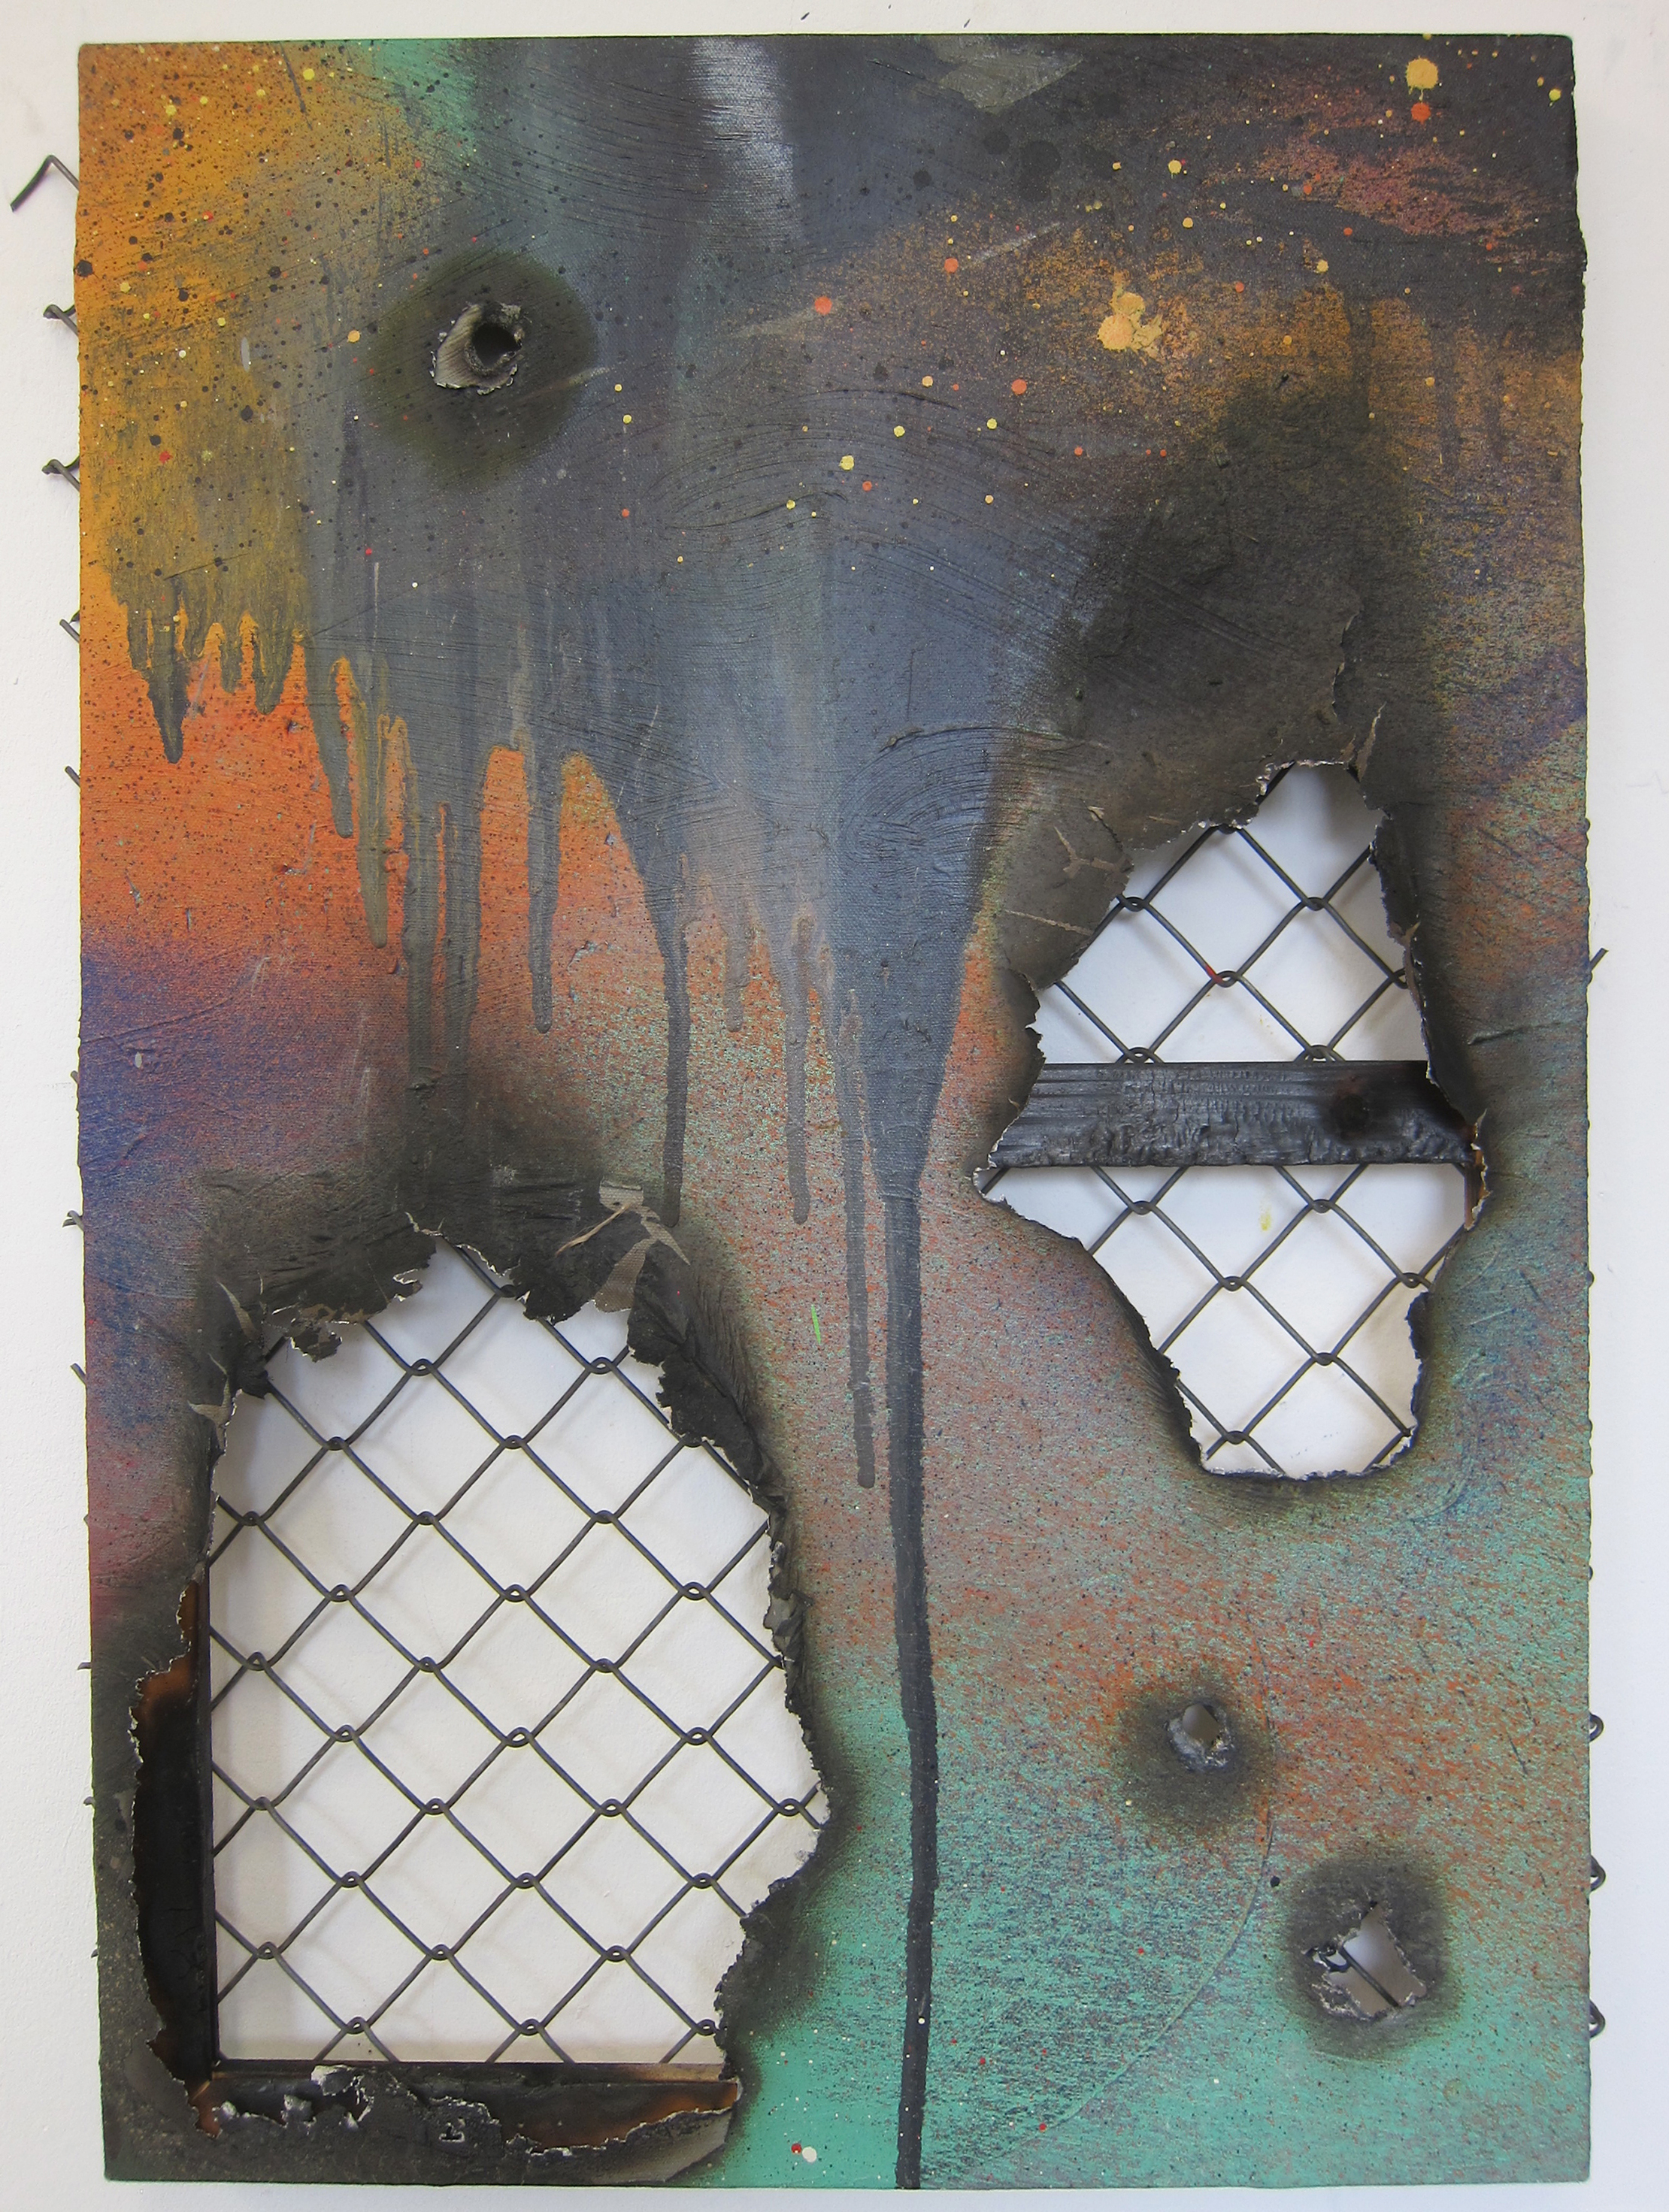 Bumpkin Zoo 001.   Alkyd resin, oil, fire, fence, and canvas.   76 x 50 cm.   2015.